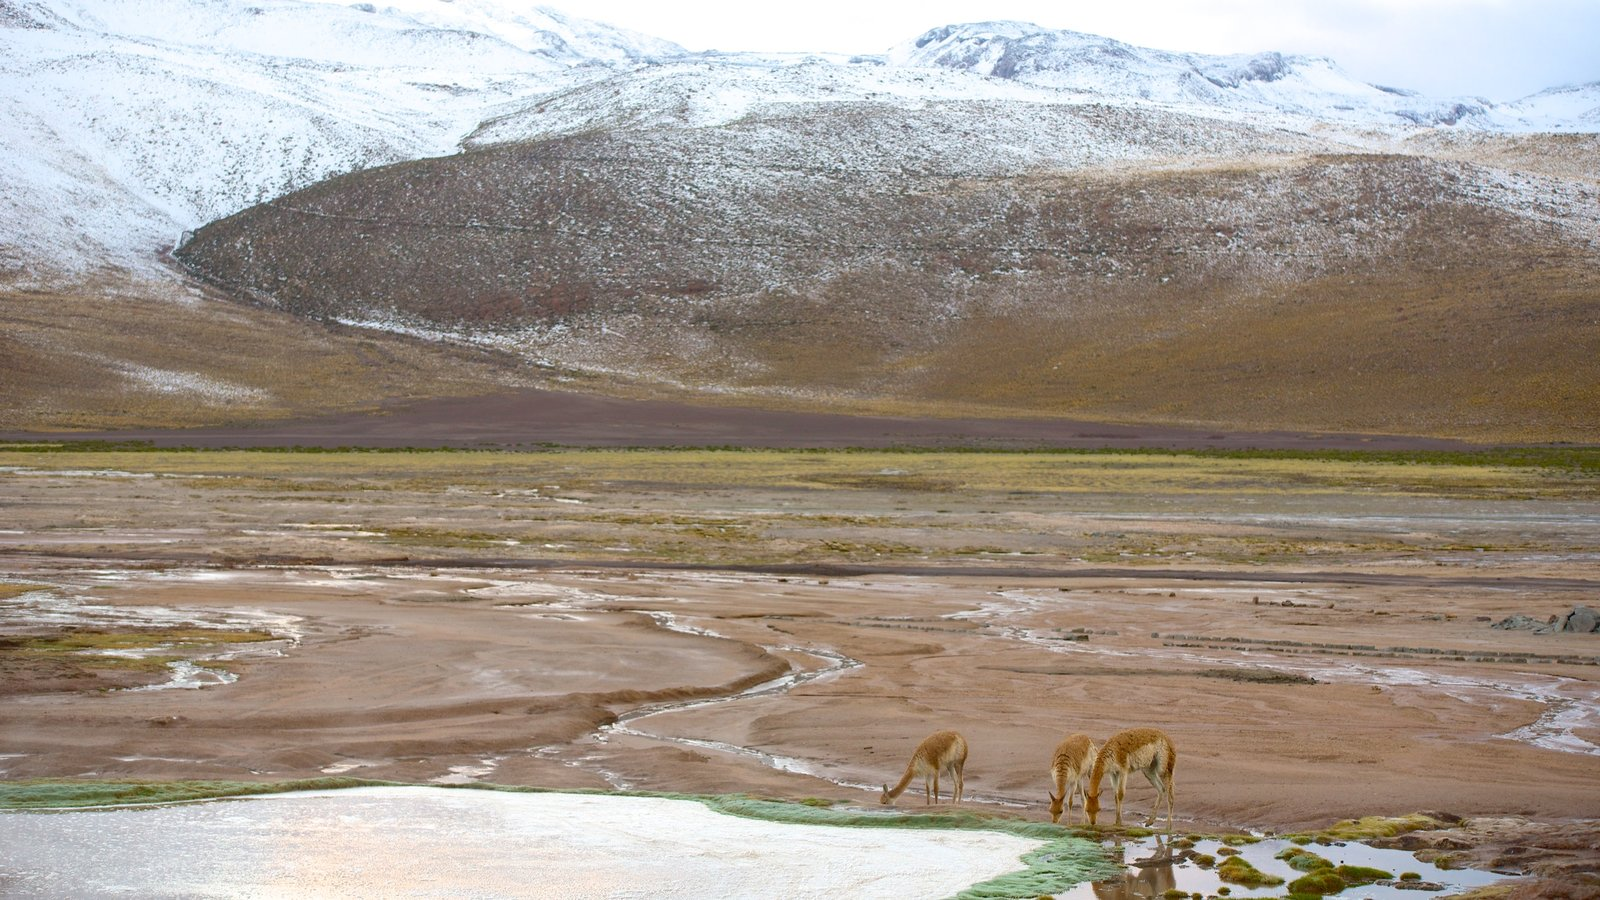 El Tatio Geyser Field featuring animals, mountains and a pond